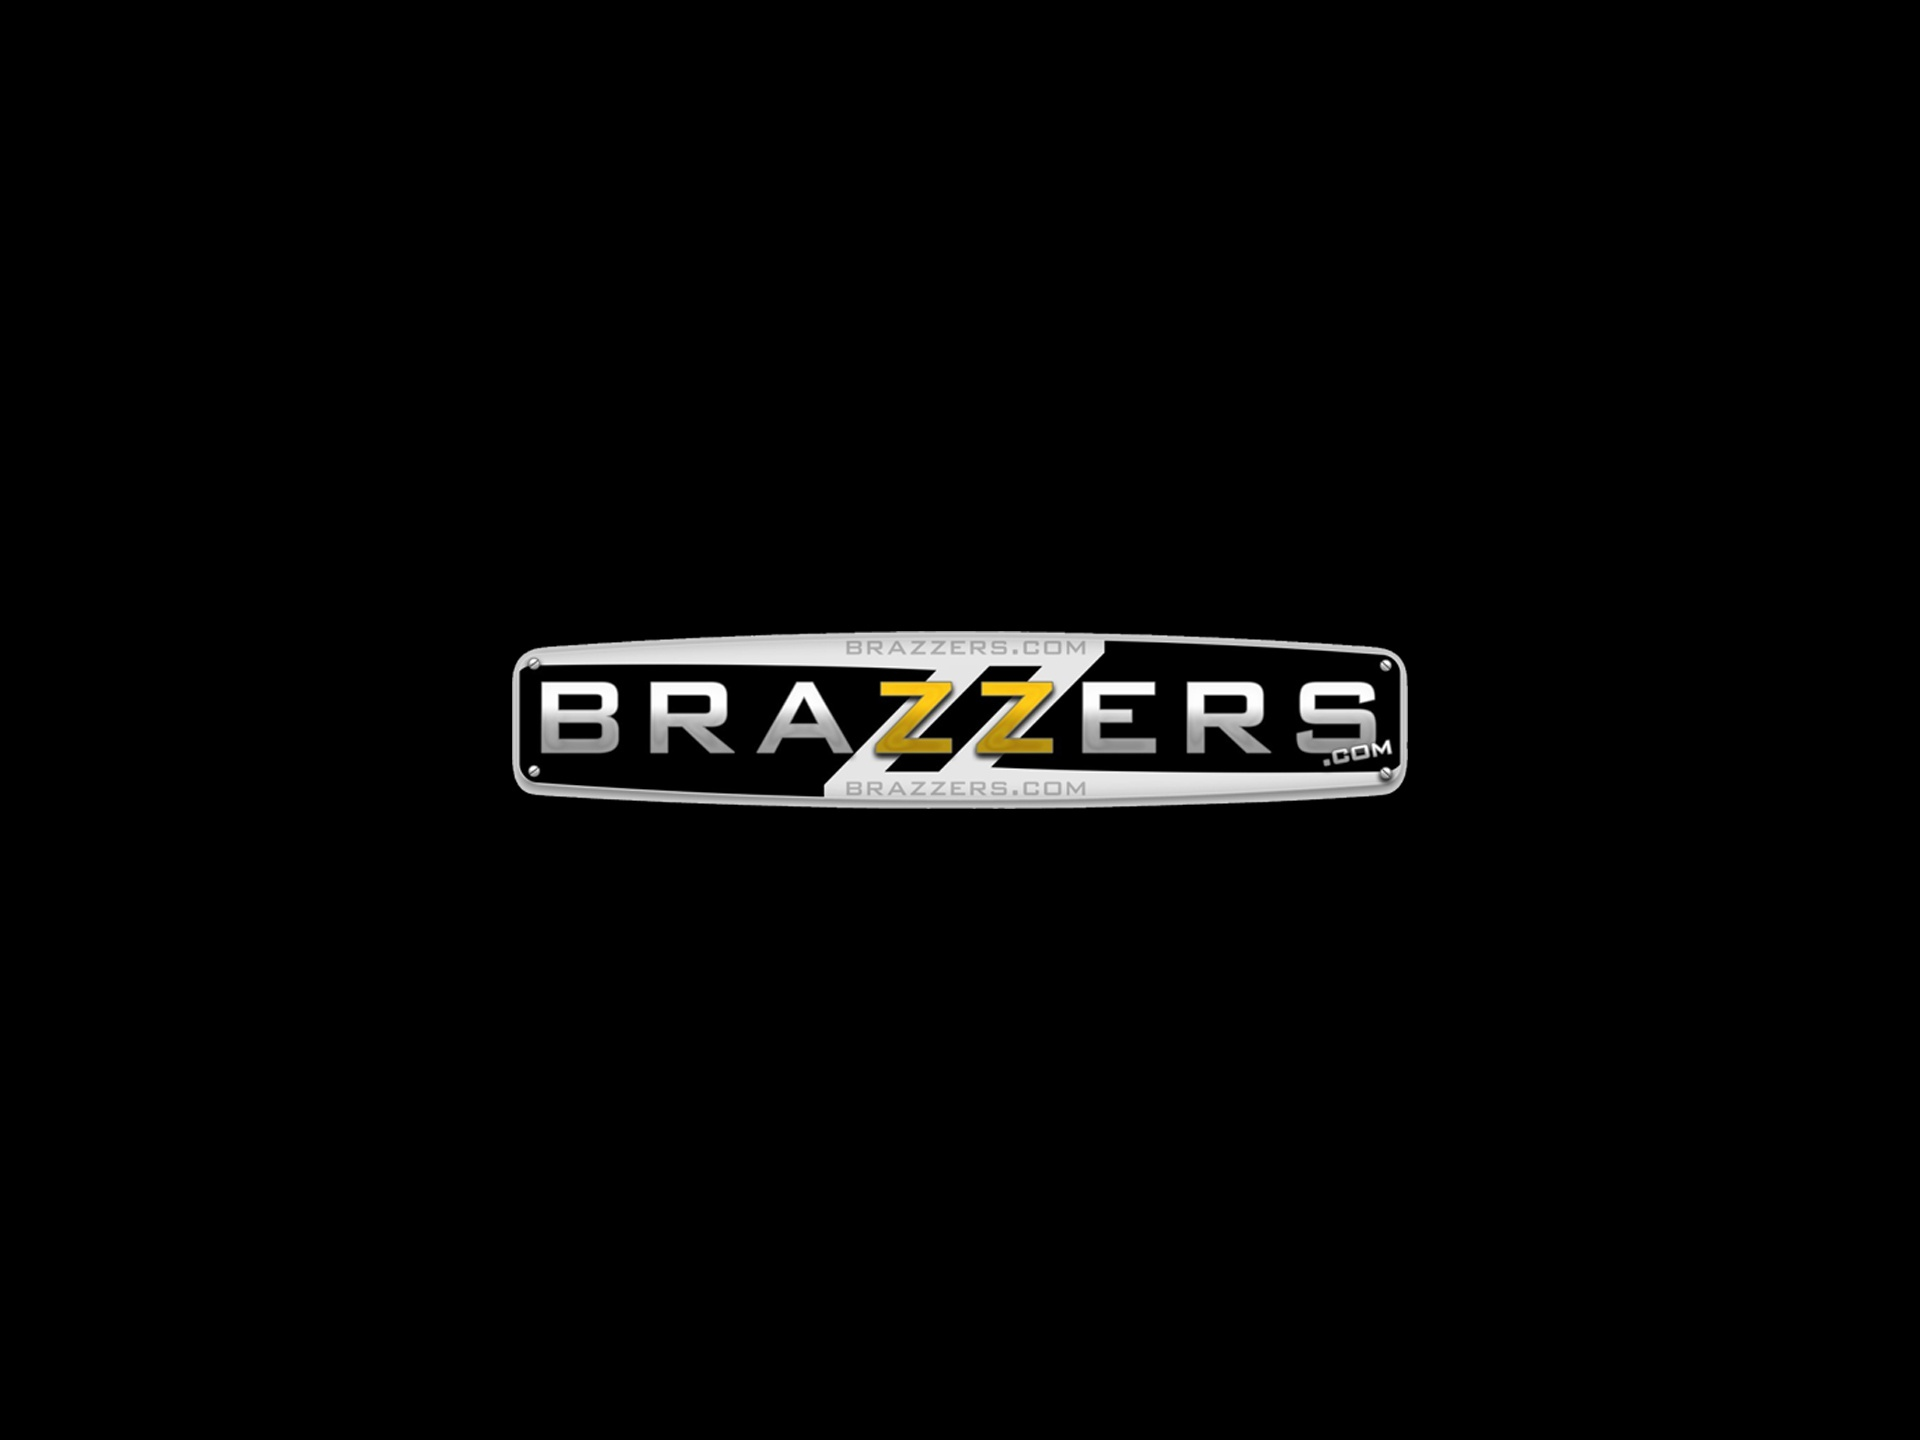 give you UNLIMITED brazzers account with bonus